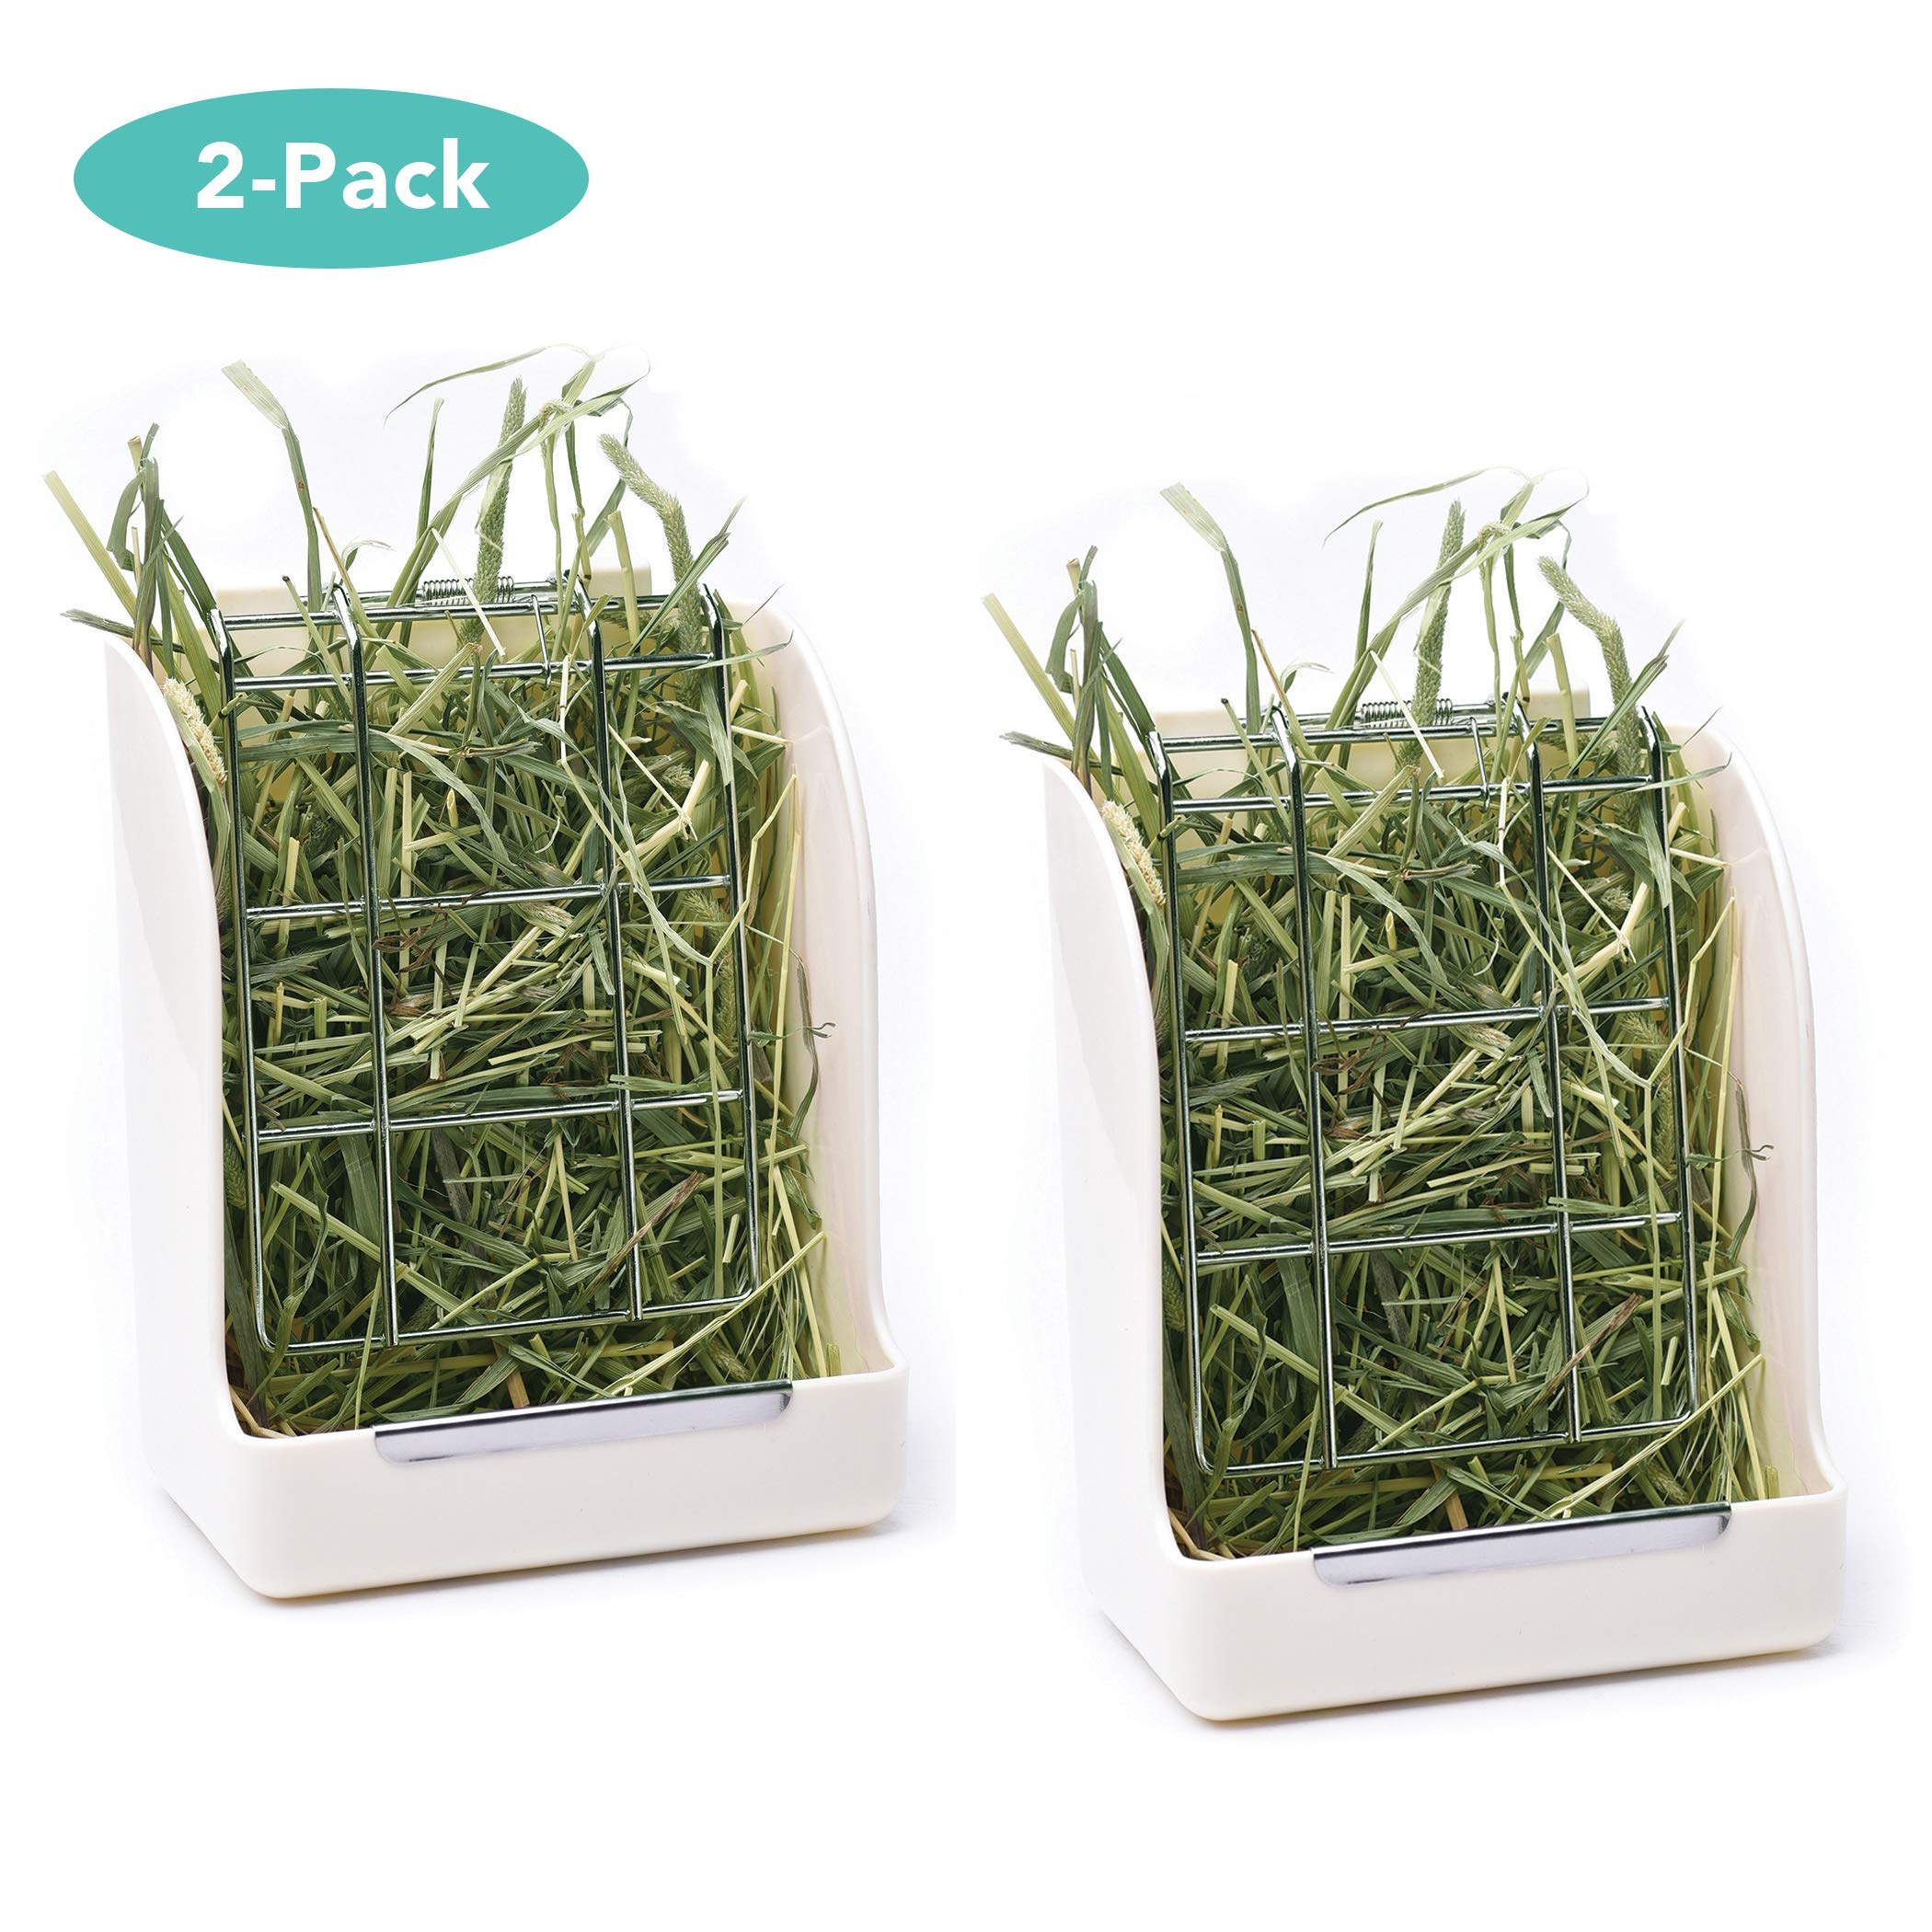 CalPalmy (Upgraded 2-Pack) Hay Feeder/Rack - Ideal for Rabbit/Chinchilla/Guinea Pig - Keeps Grass Clean & Fresh/Non-Toxic, BPA Free Plastic/Minimizing Waste/Mess by CalPalmy (Image #1)